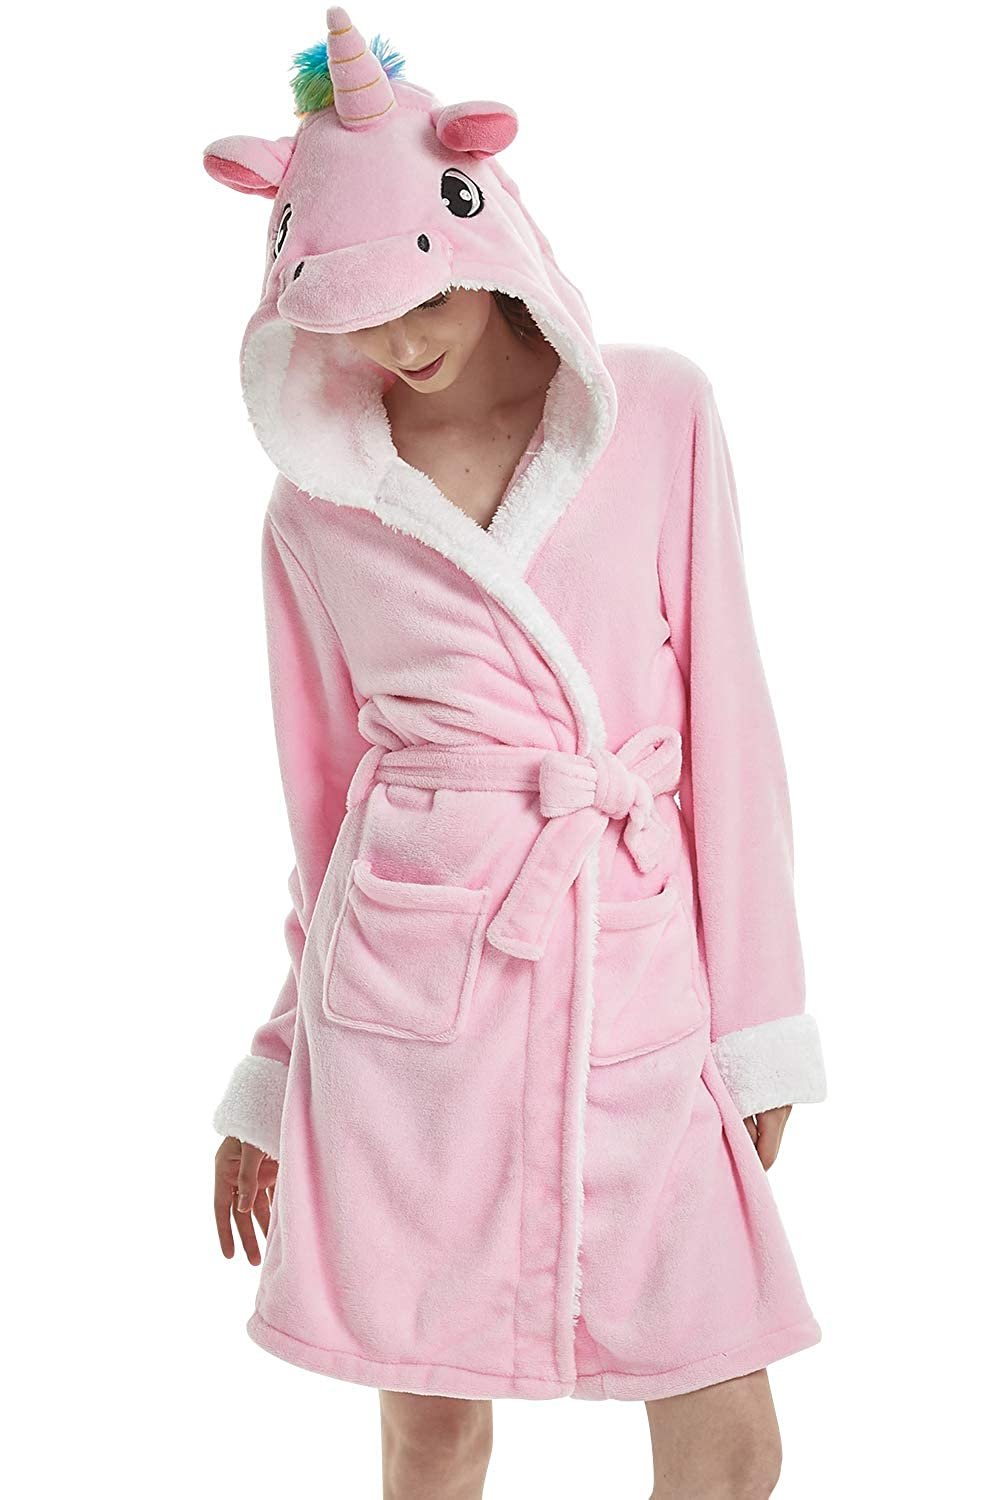 Dolamen Unisex Men's Women's Dressing Gowns Bathrobe with Hood, Coral Fleece Soft Kigurumi Cartoon Morning Housecoat Nightwear Pyjamas Belt Pockets